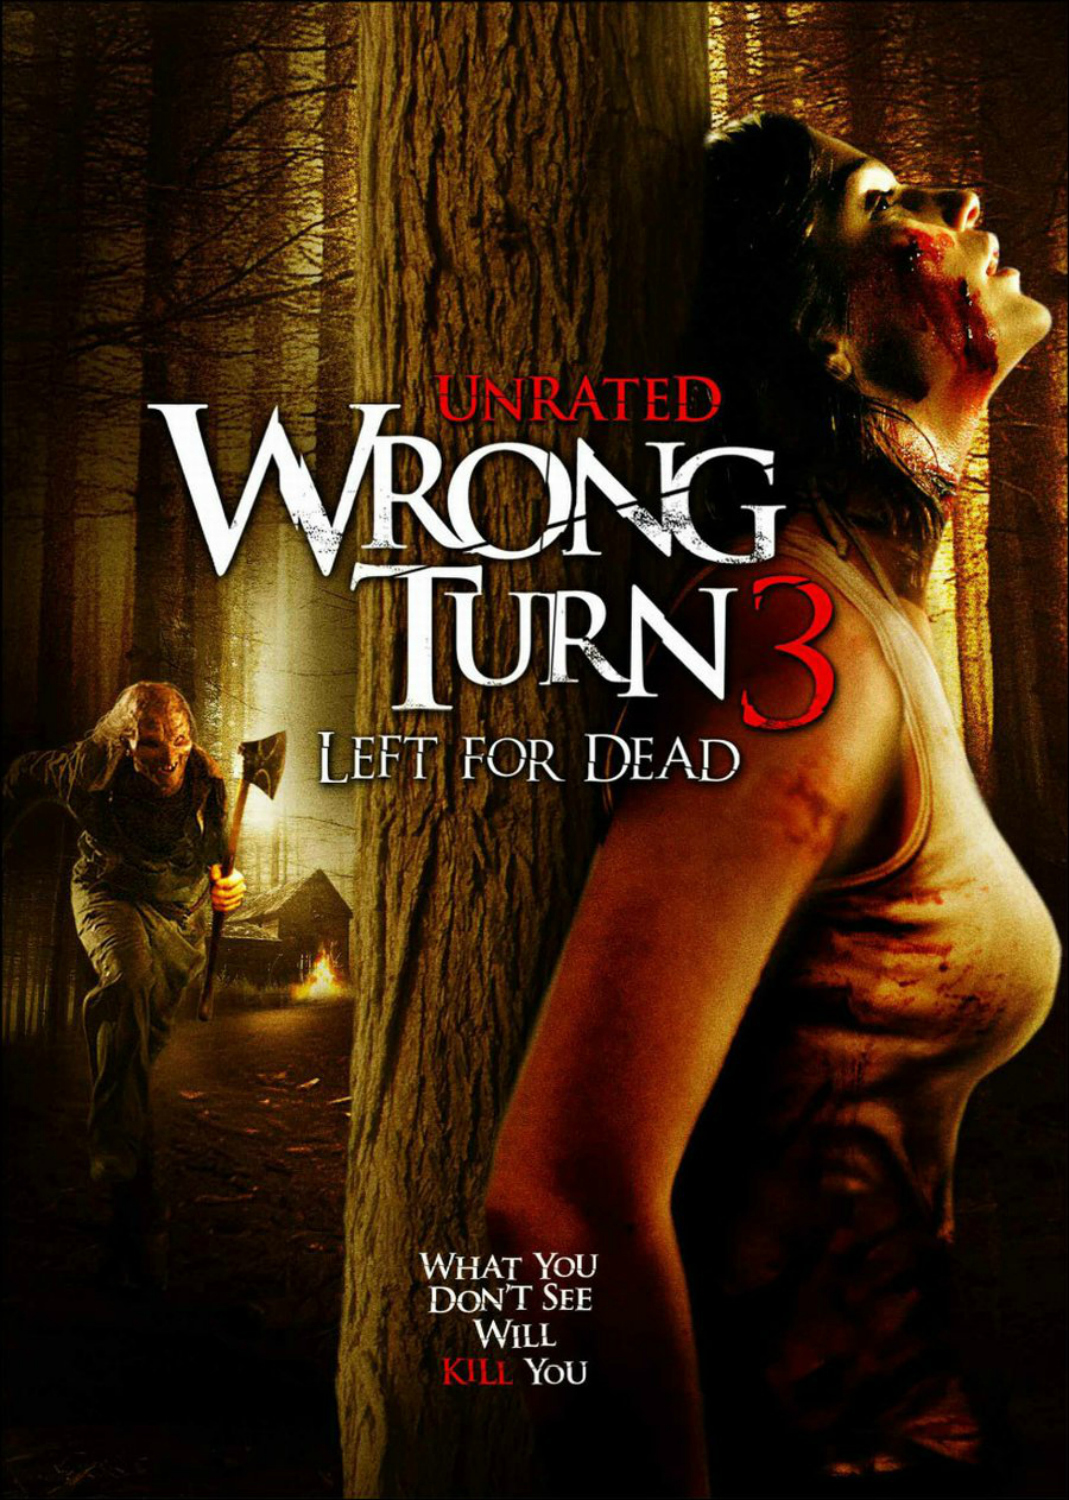 Wrong turn 5 full movie in hindi